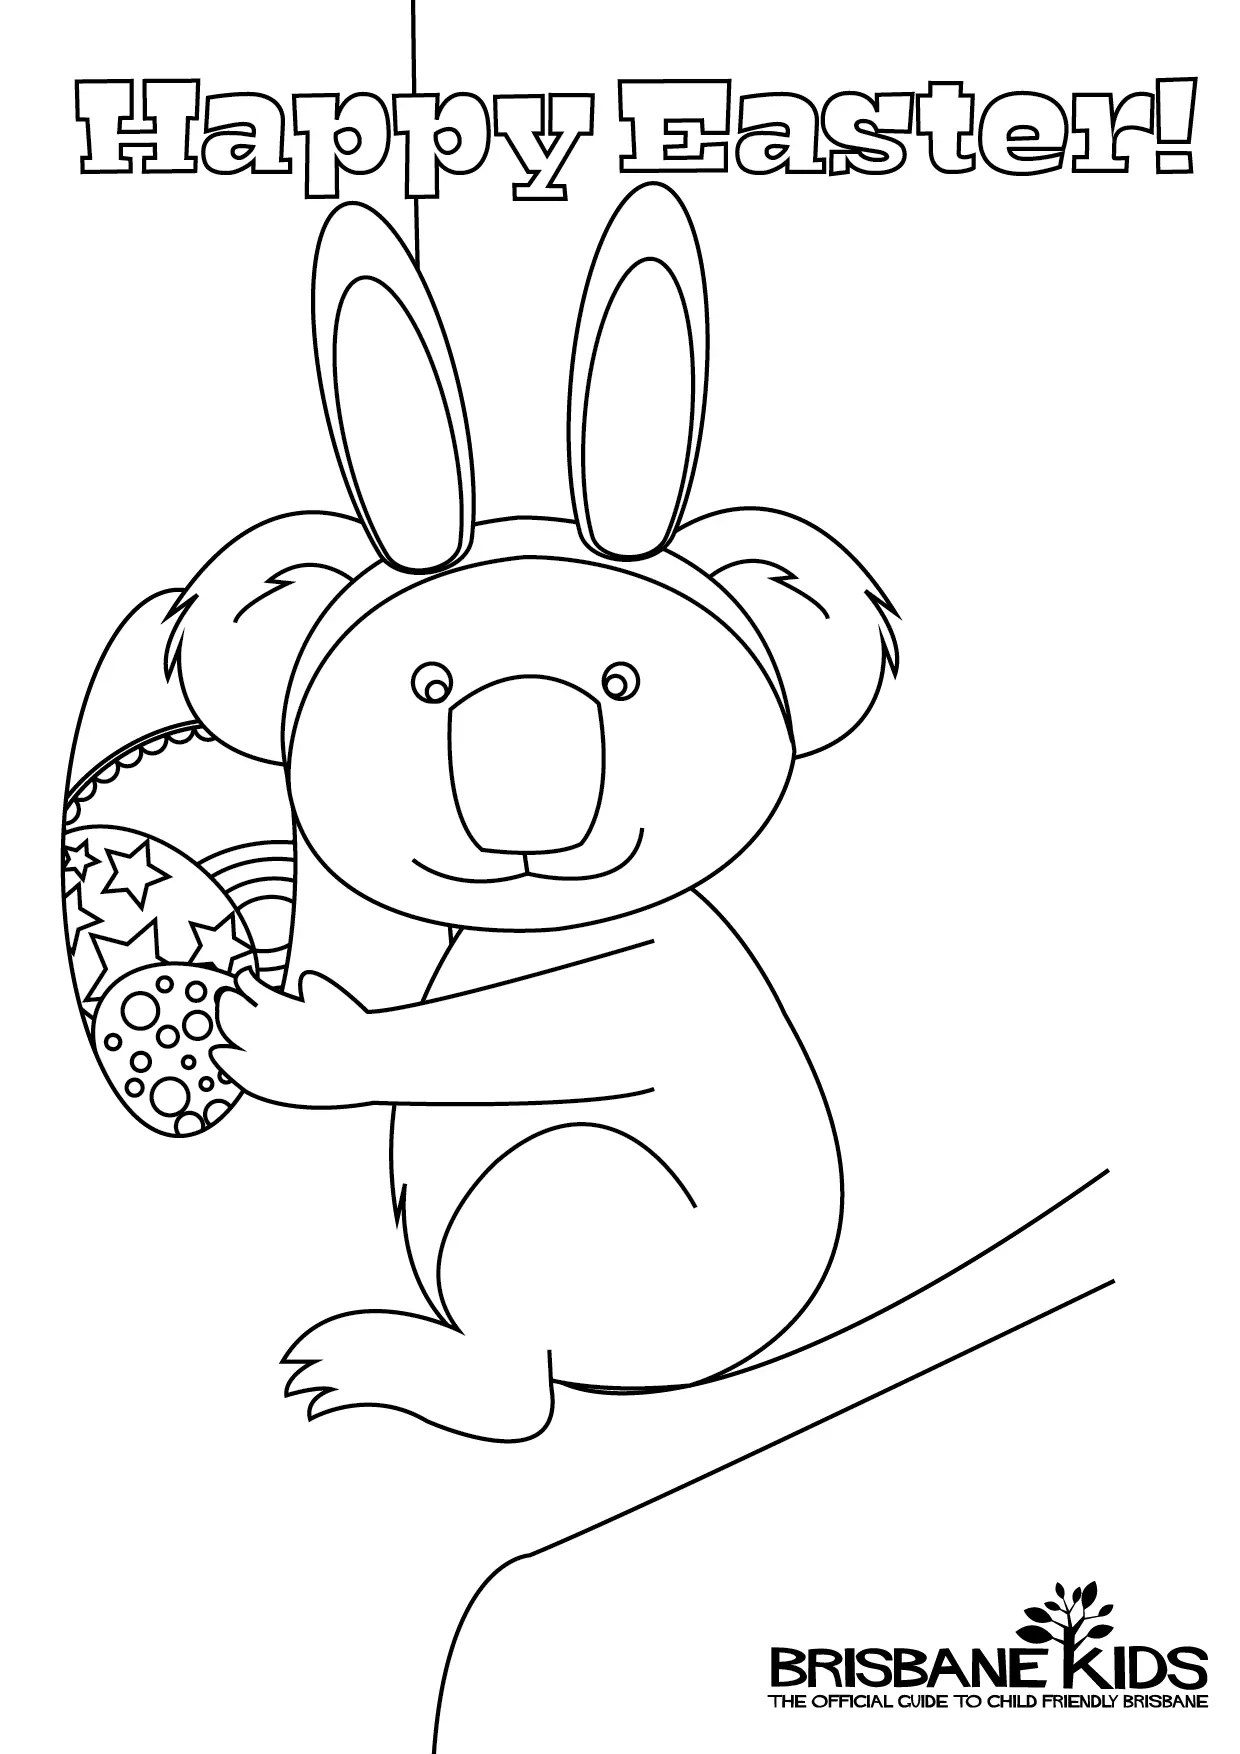 Australian Themed Easter Colouring Pages